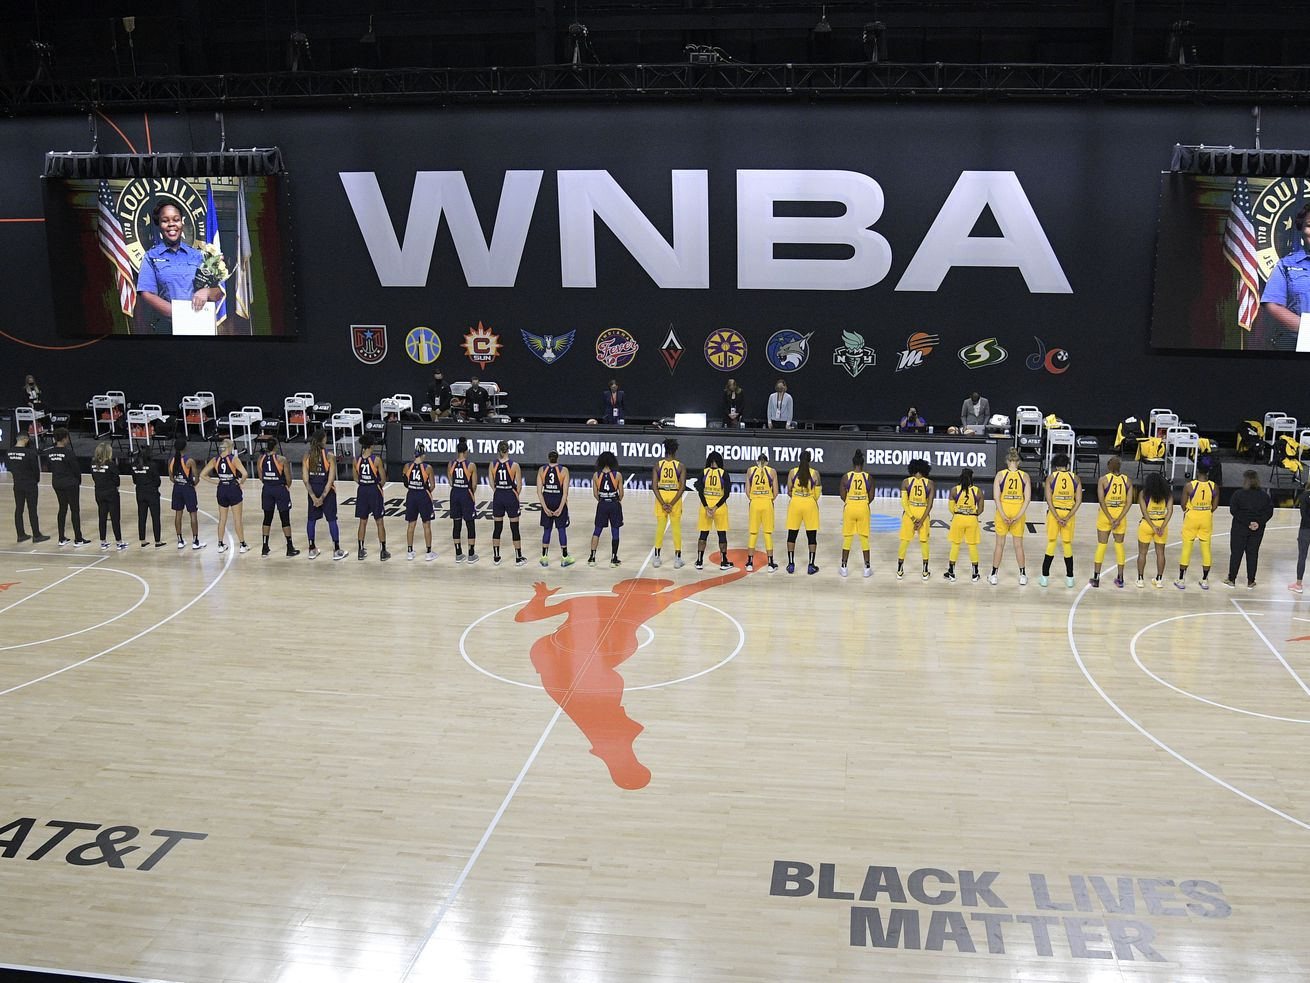 Sky among WNBA players urging Georgians to vote against Dream co-owner